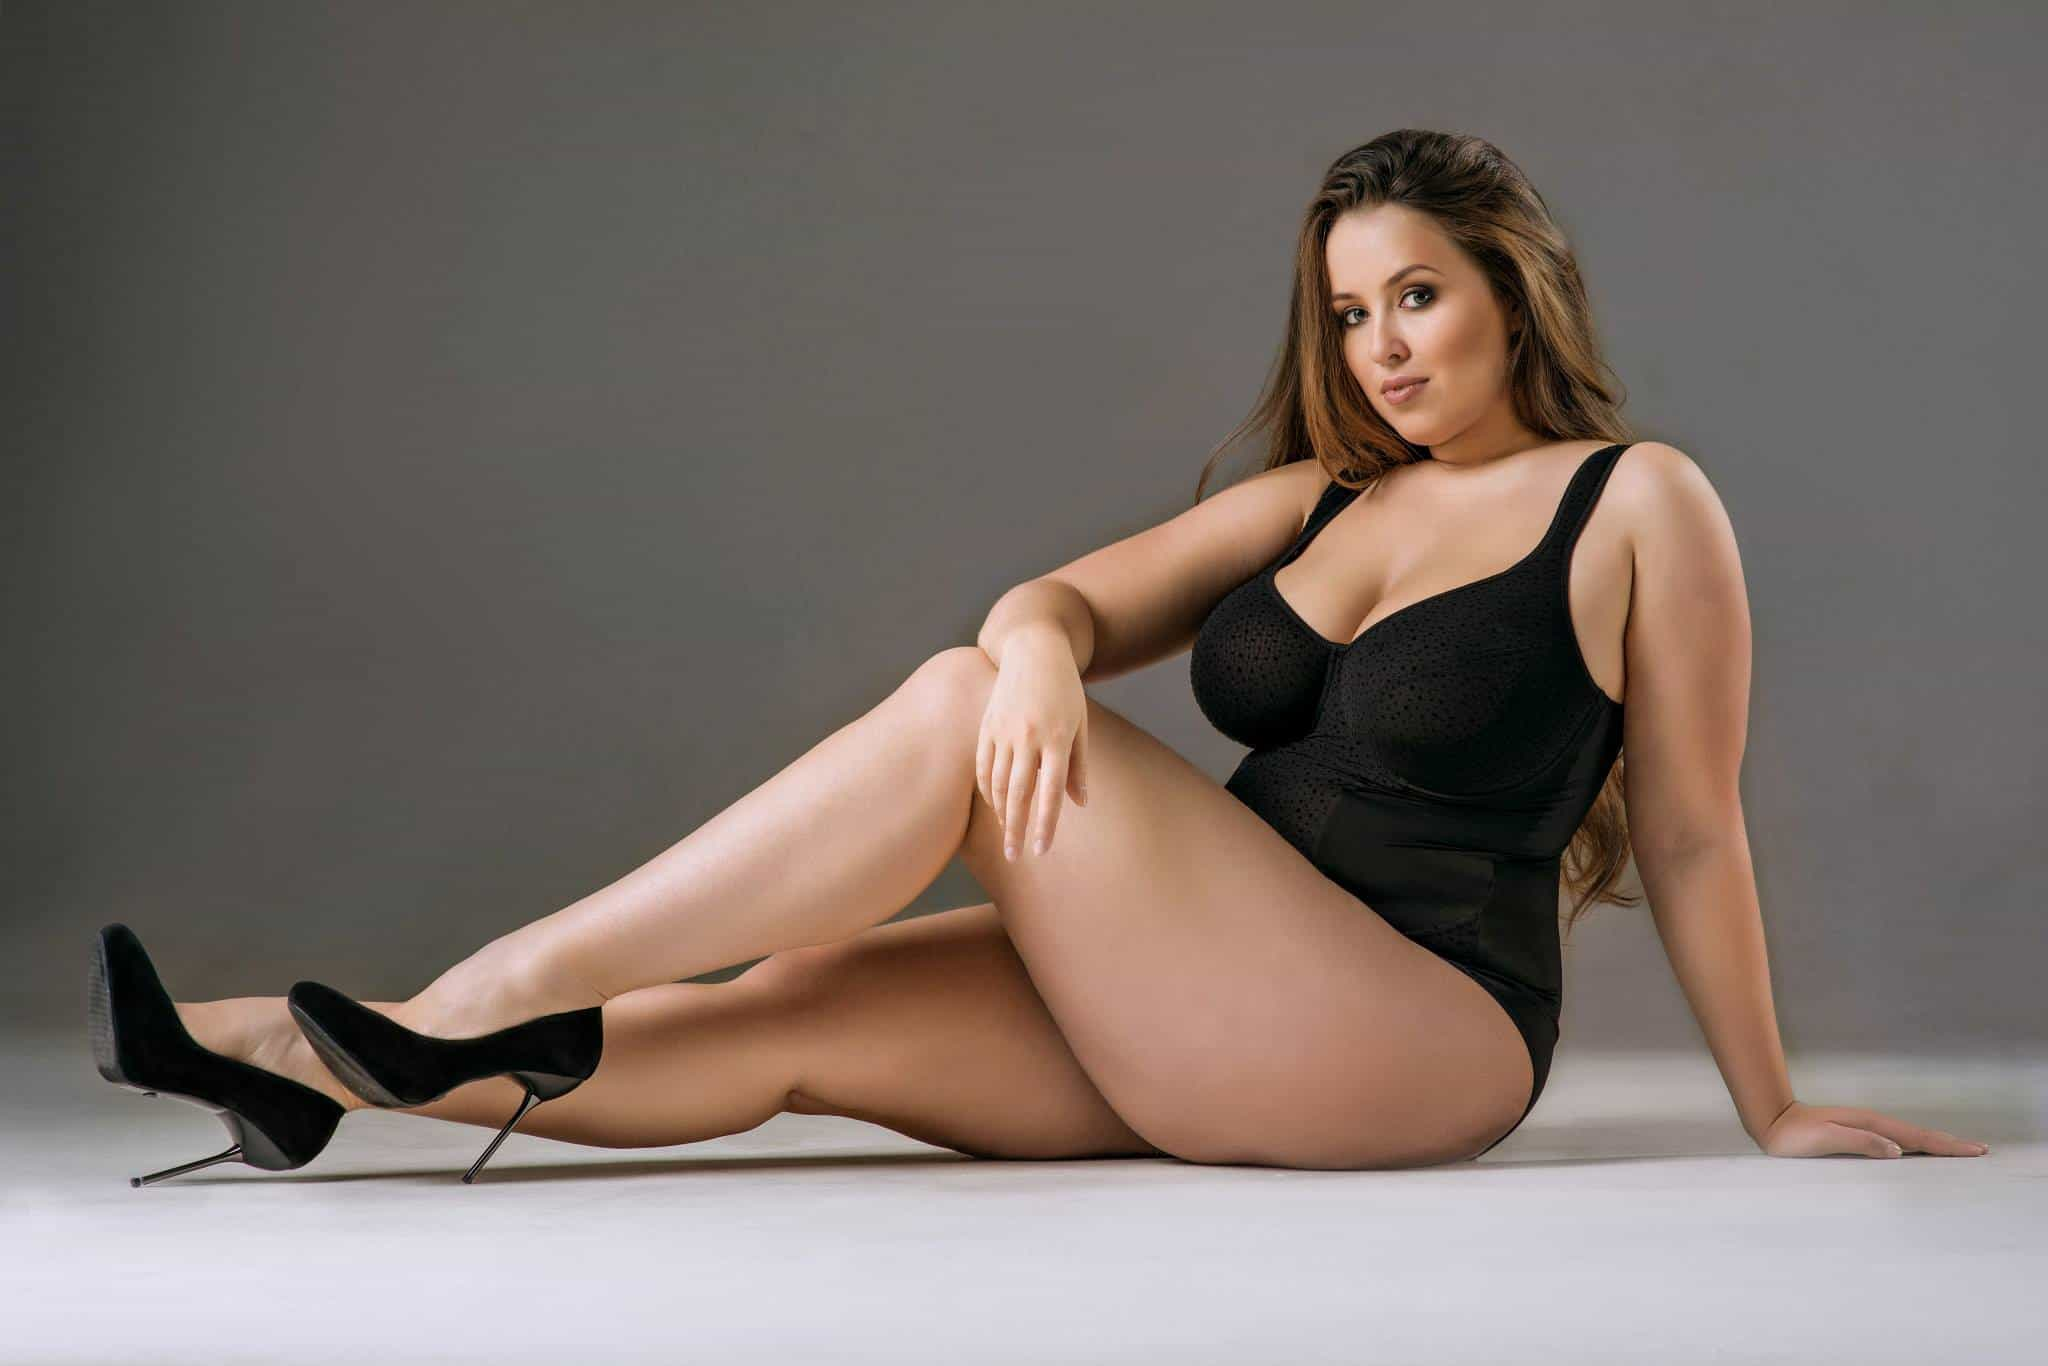 theyre Xvideo pantyhose seductions interests include, traveling